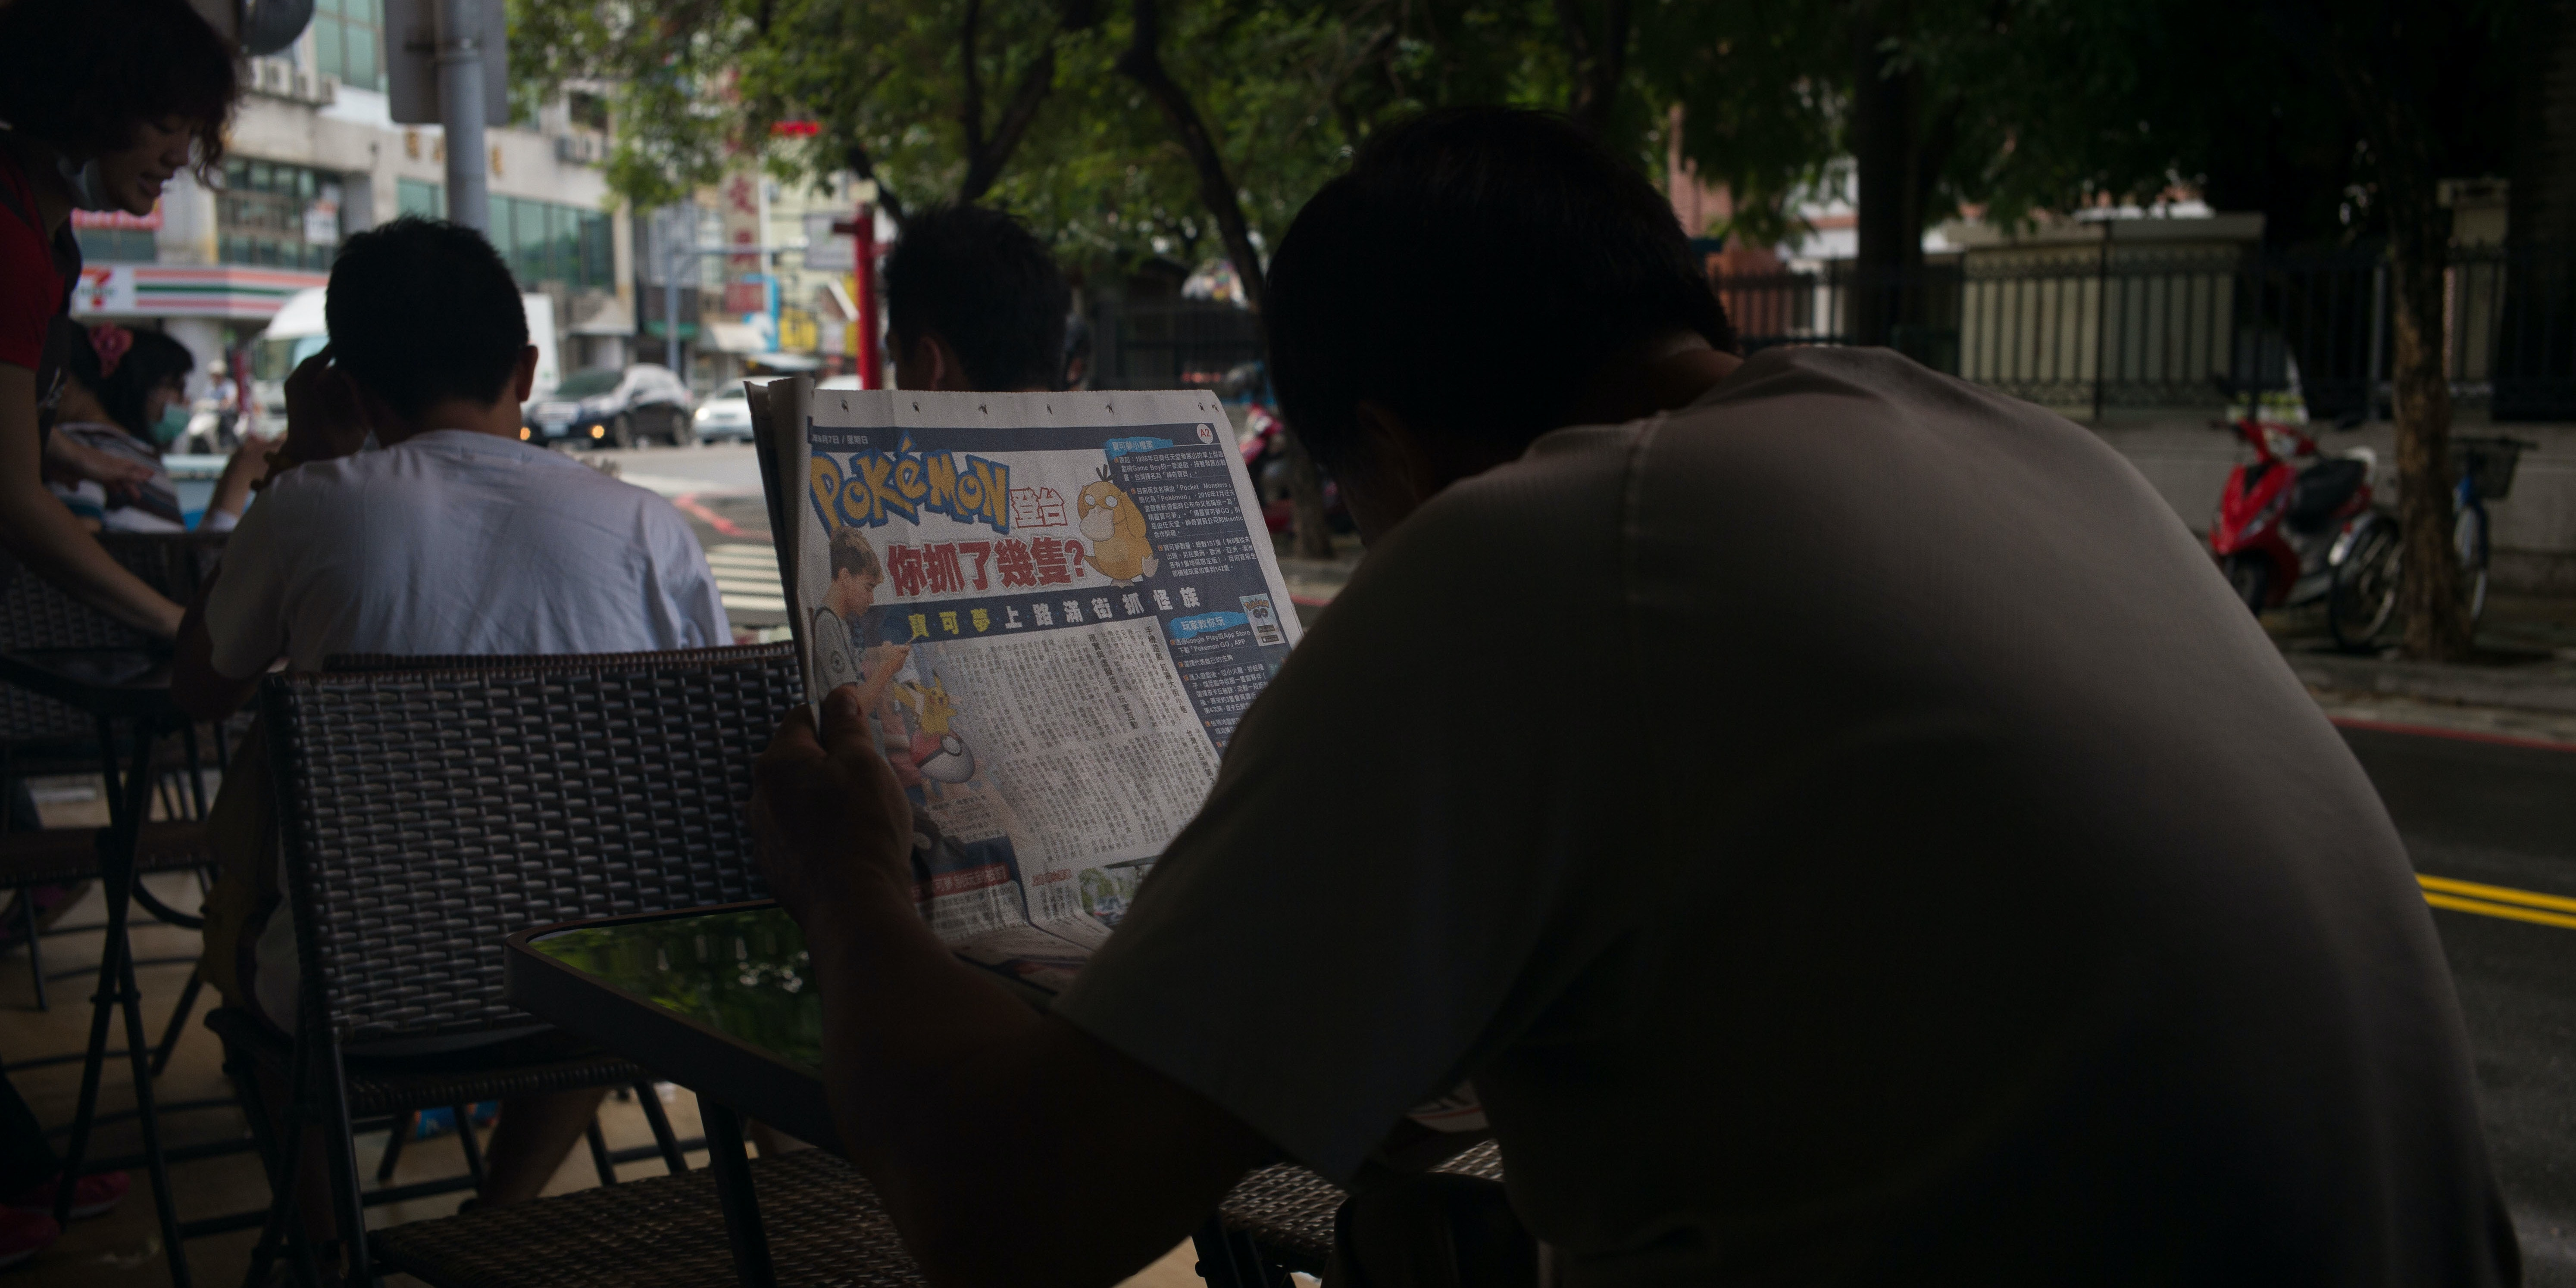 TAINAN, TAIWAN - AUGUST 08:  A man reads a Pokemon Go article in the newspaper on August 7, 2016 in Tainan, Taiwan. 'Pokemon Go,' which has been a smash-hit across the globe was launched in Taiwan on 6th August. Since its global launch, the mobile game has been an unexpected megahit among users who have taken to the streets with their smartphones.  (Photo by Billy H.C. Kwok/Getty Images)